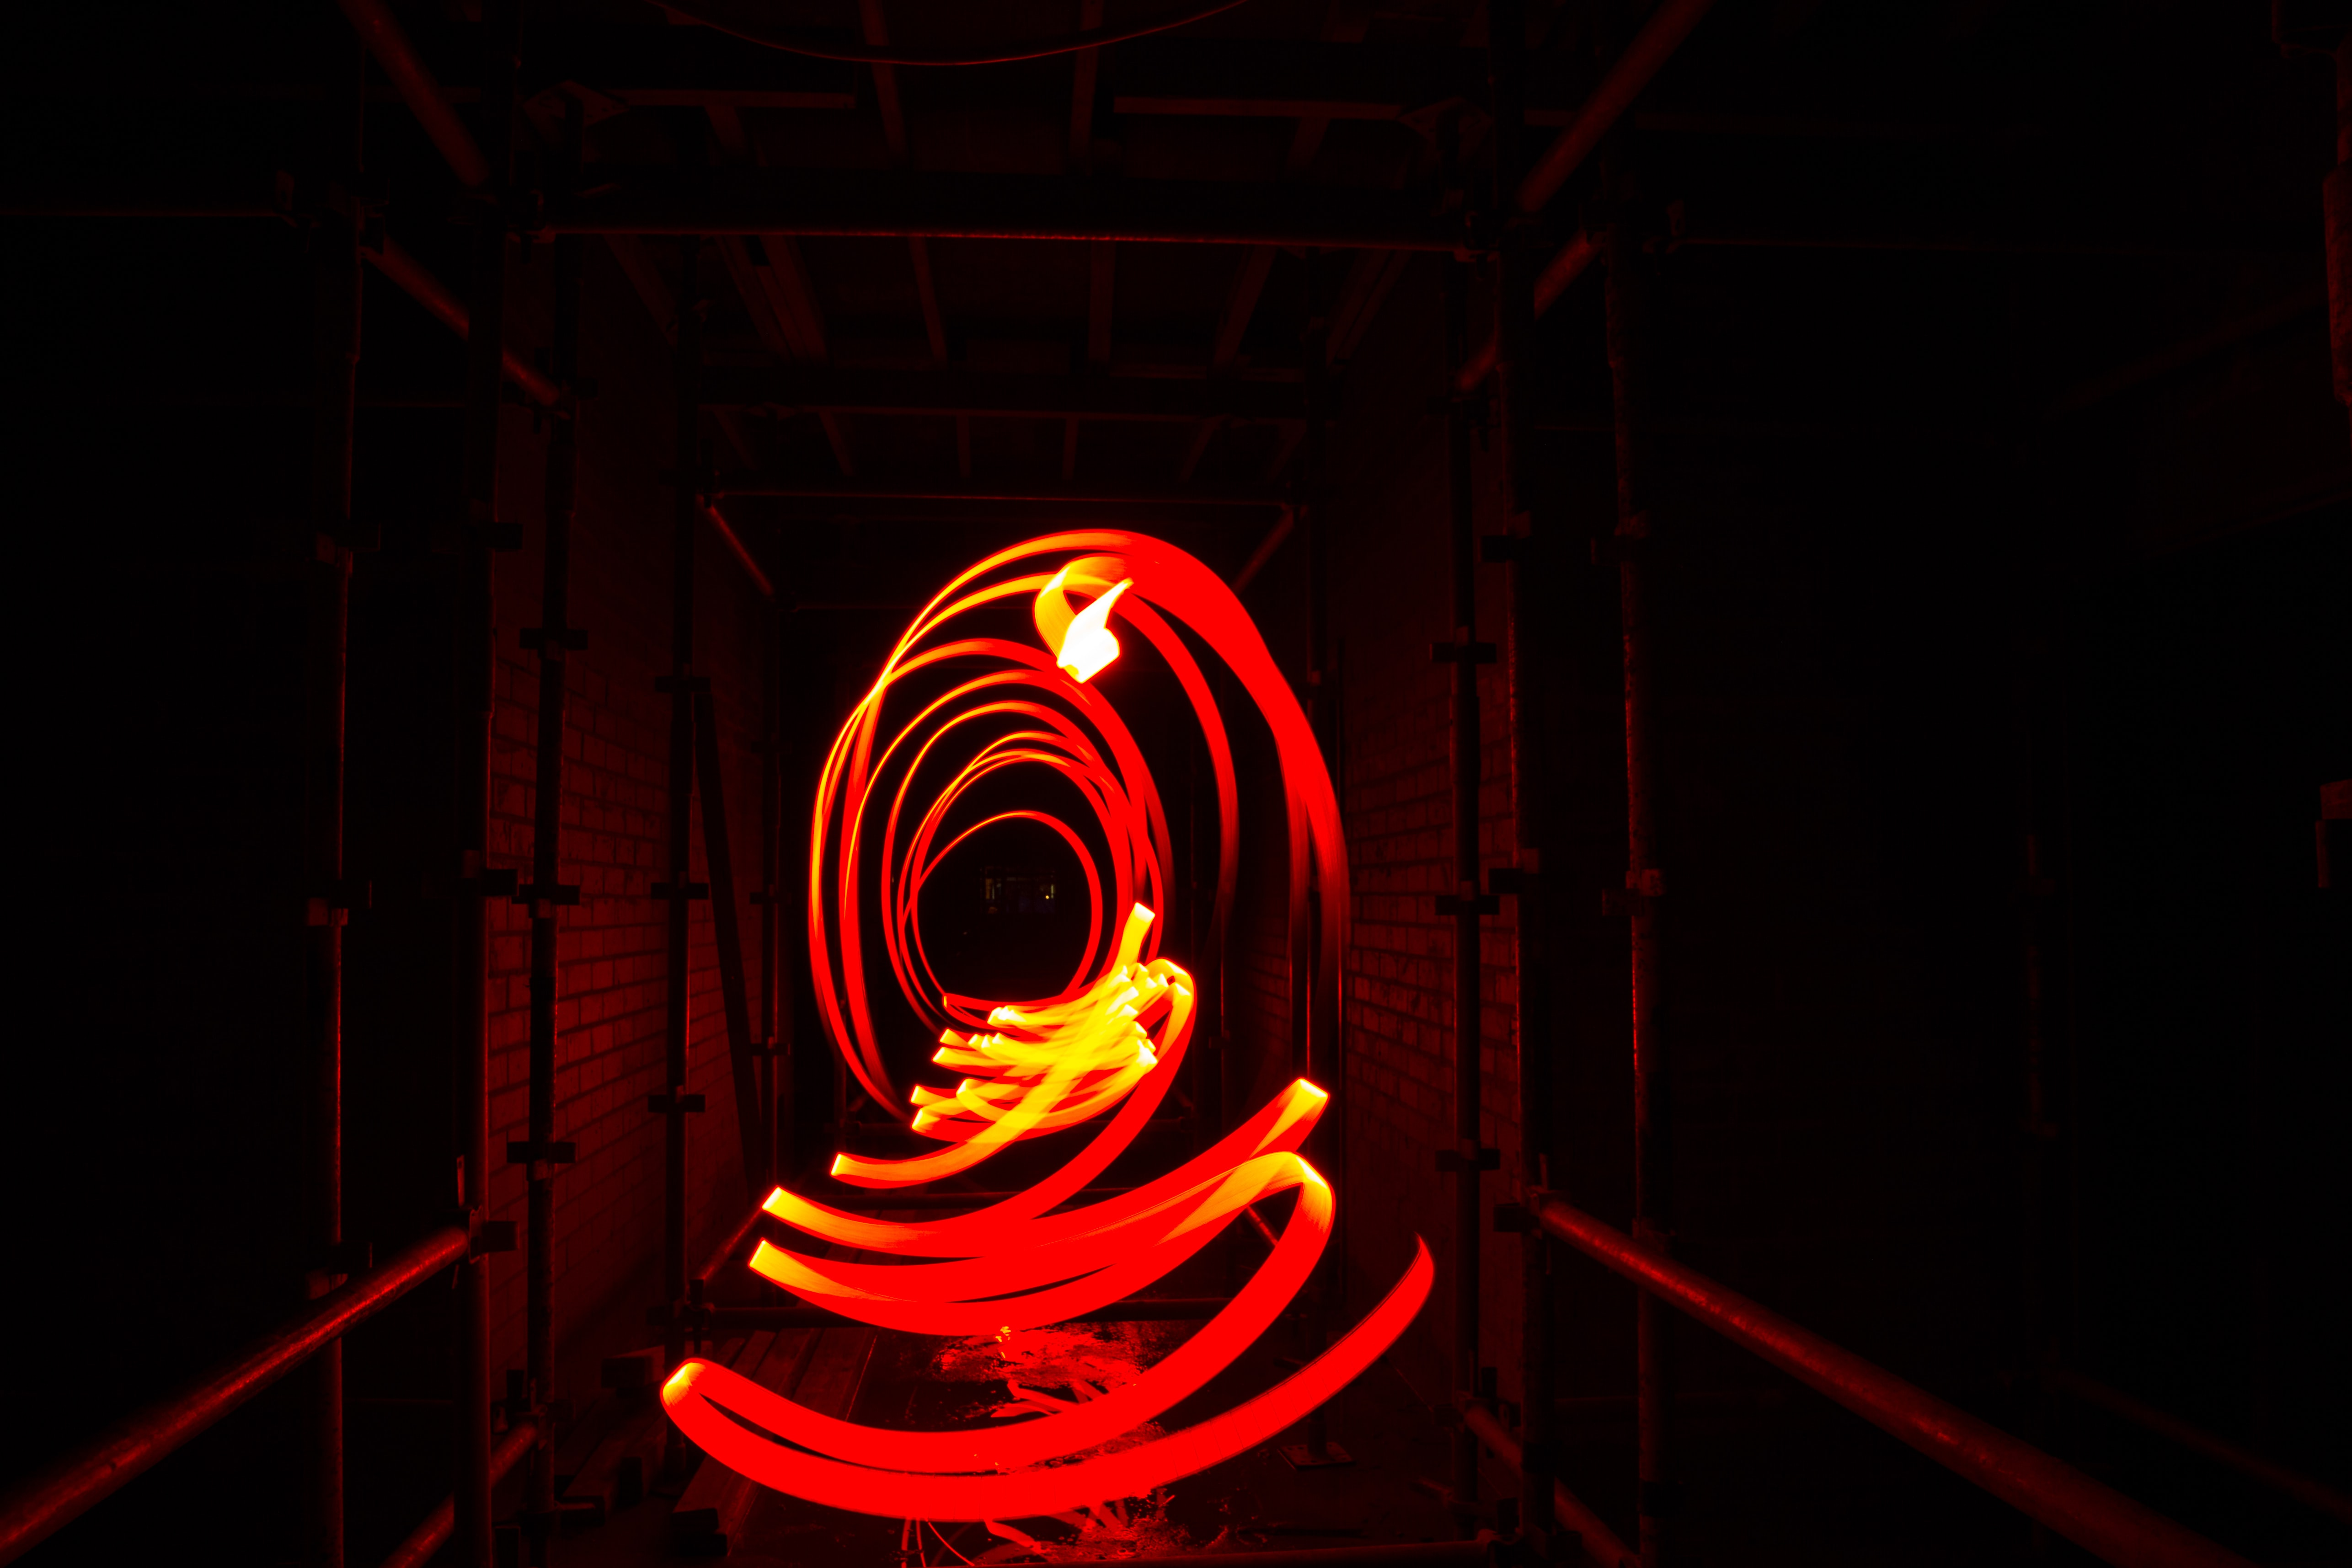 A long exposure shot of circles streaking from a bright red light trail